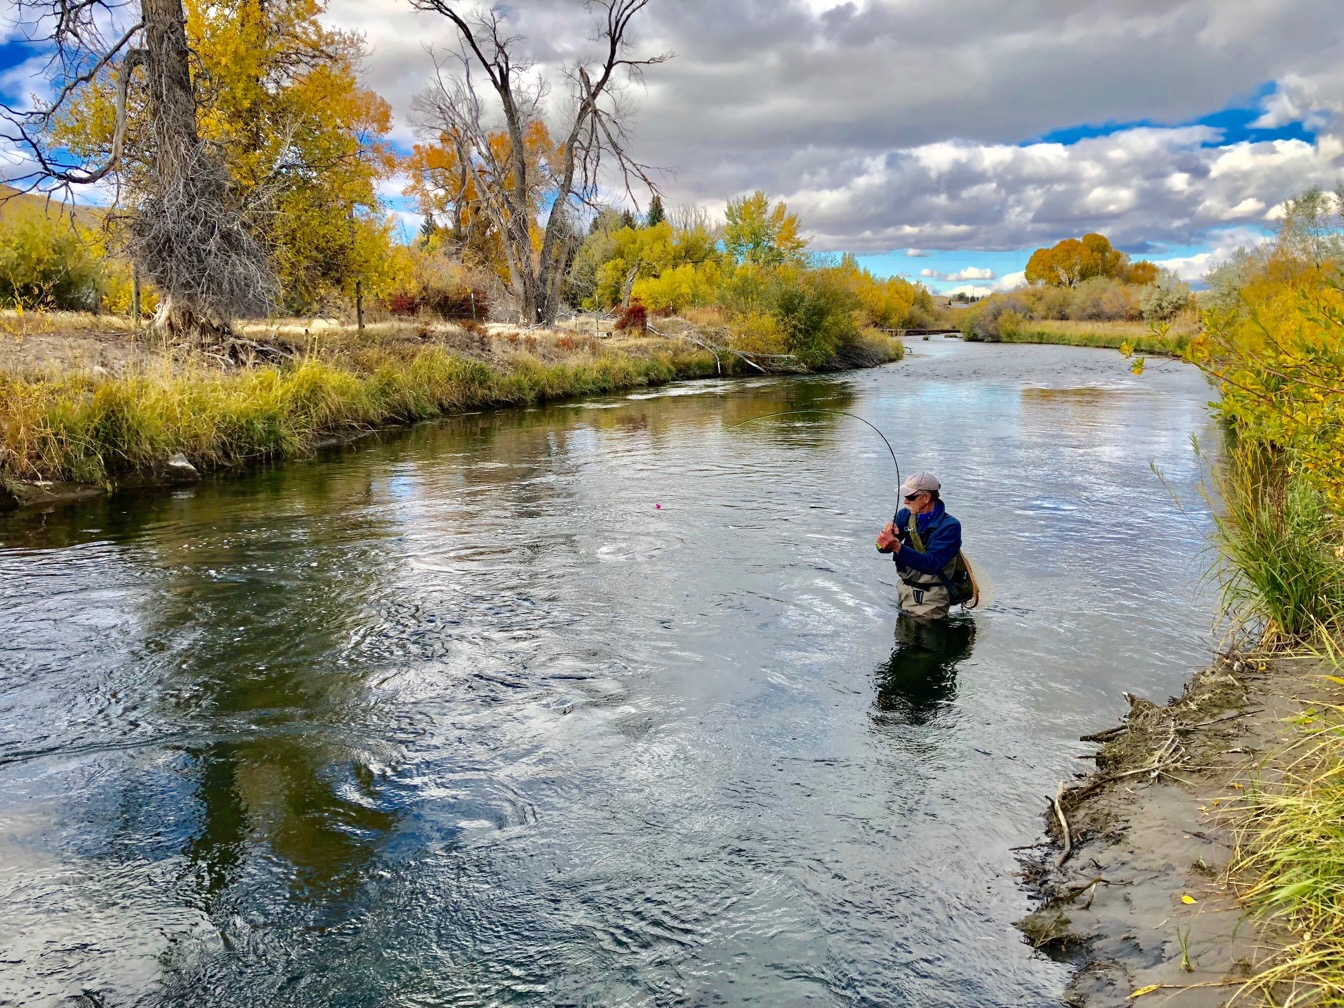 Photo of a man fishing hip deep in a river.